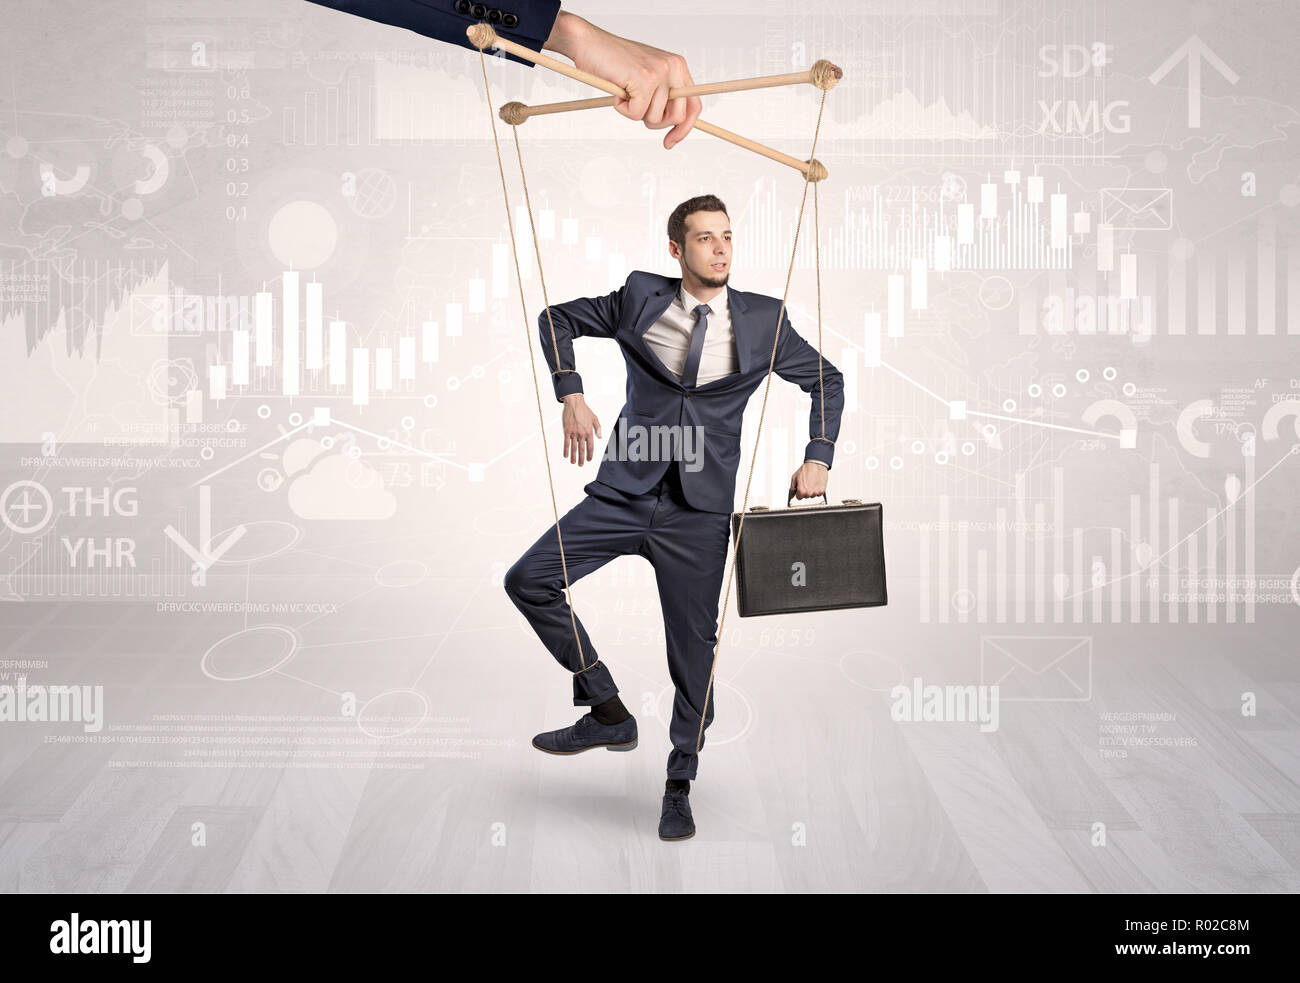 Puppet businessman controlled by another hand with financial concept  - Stock Image